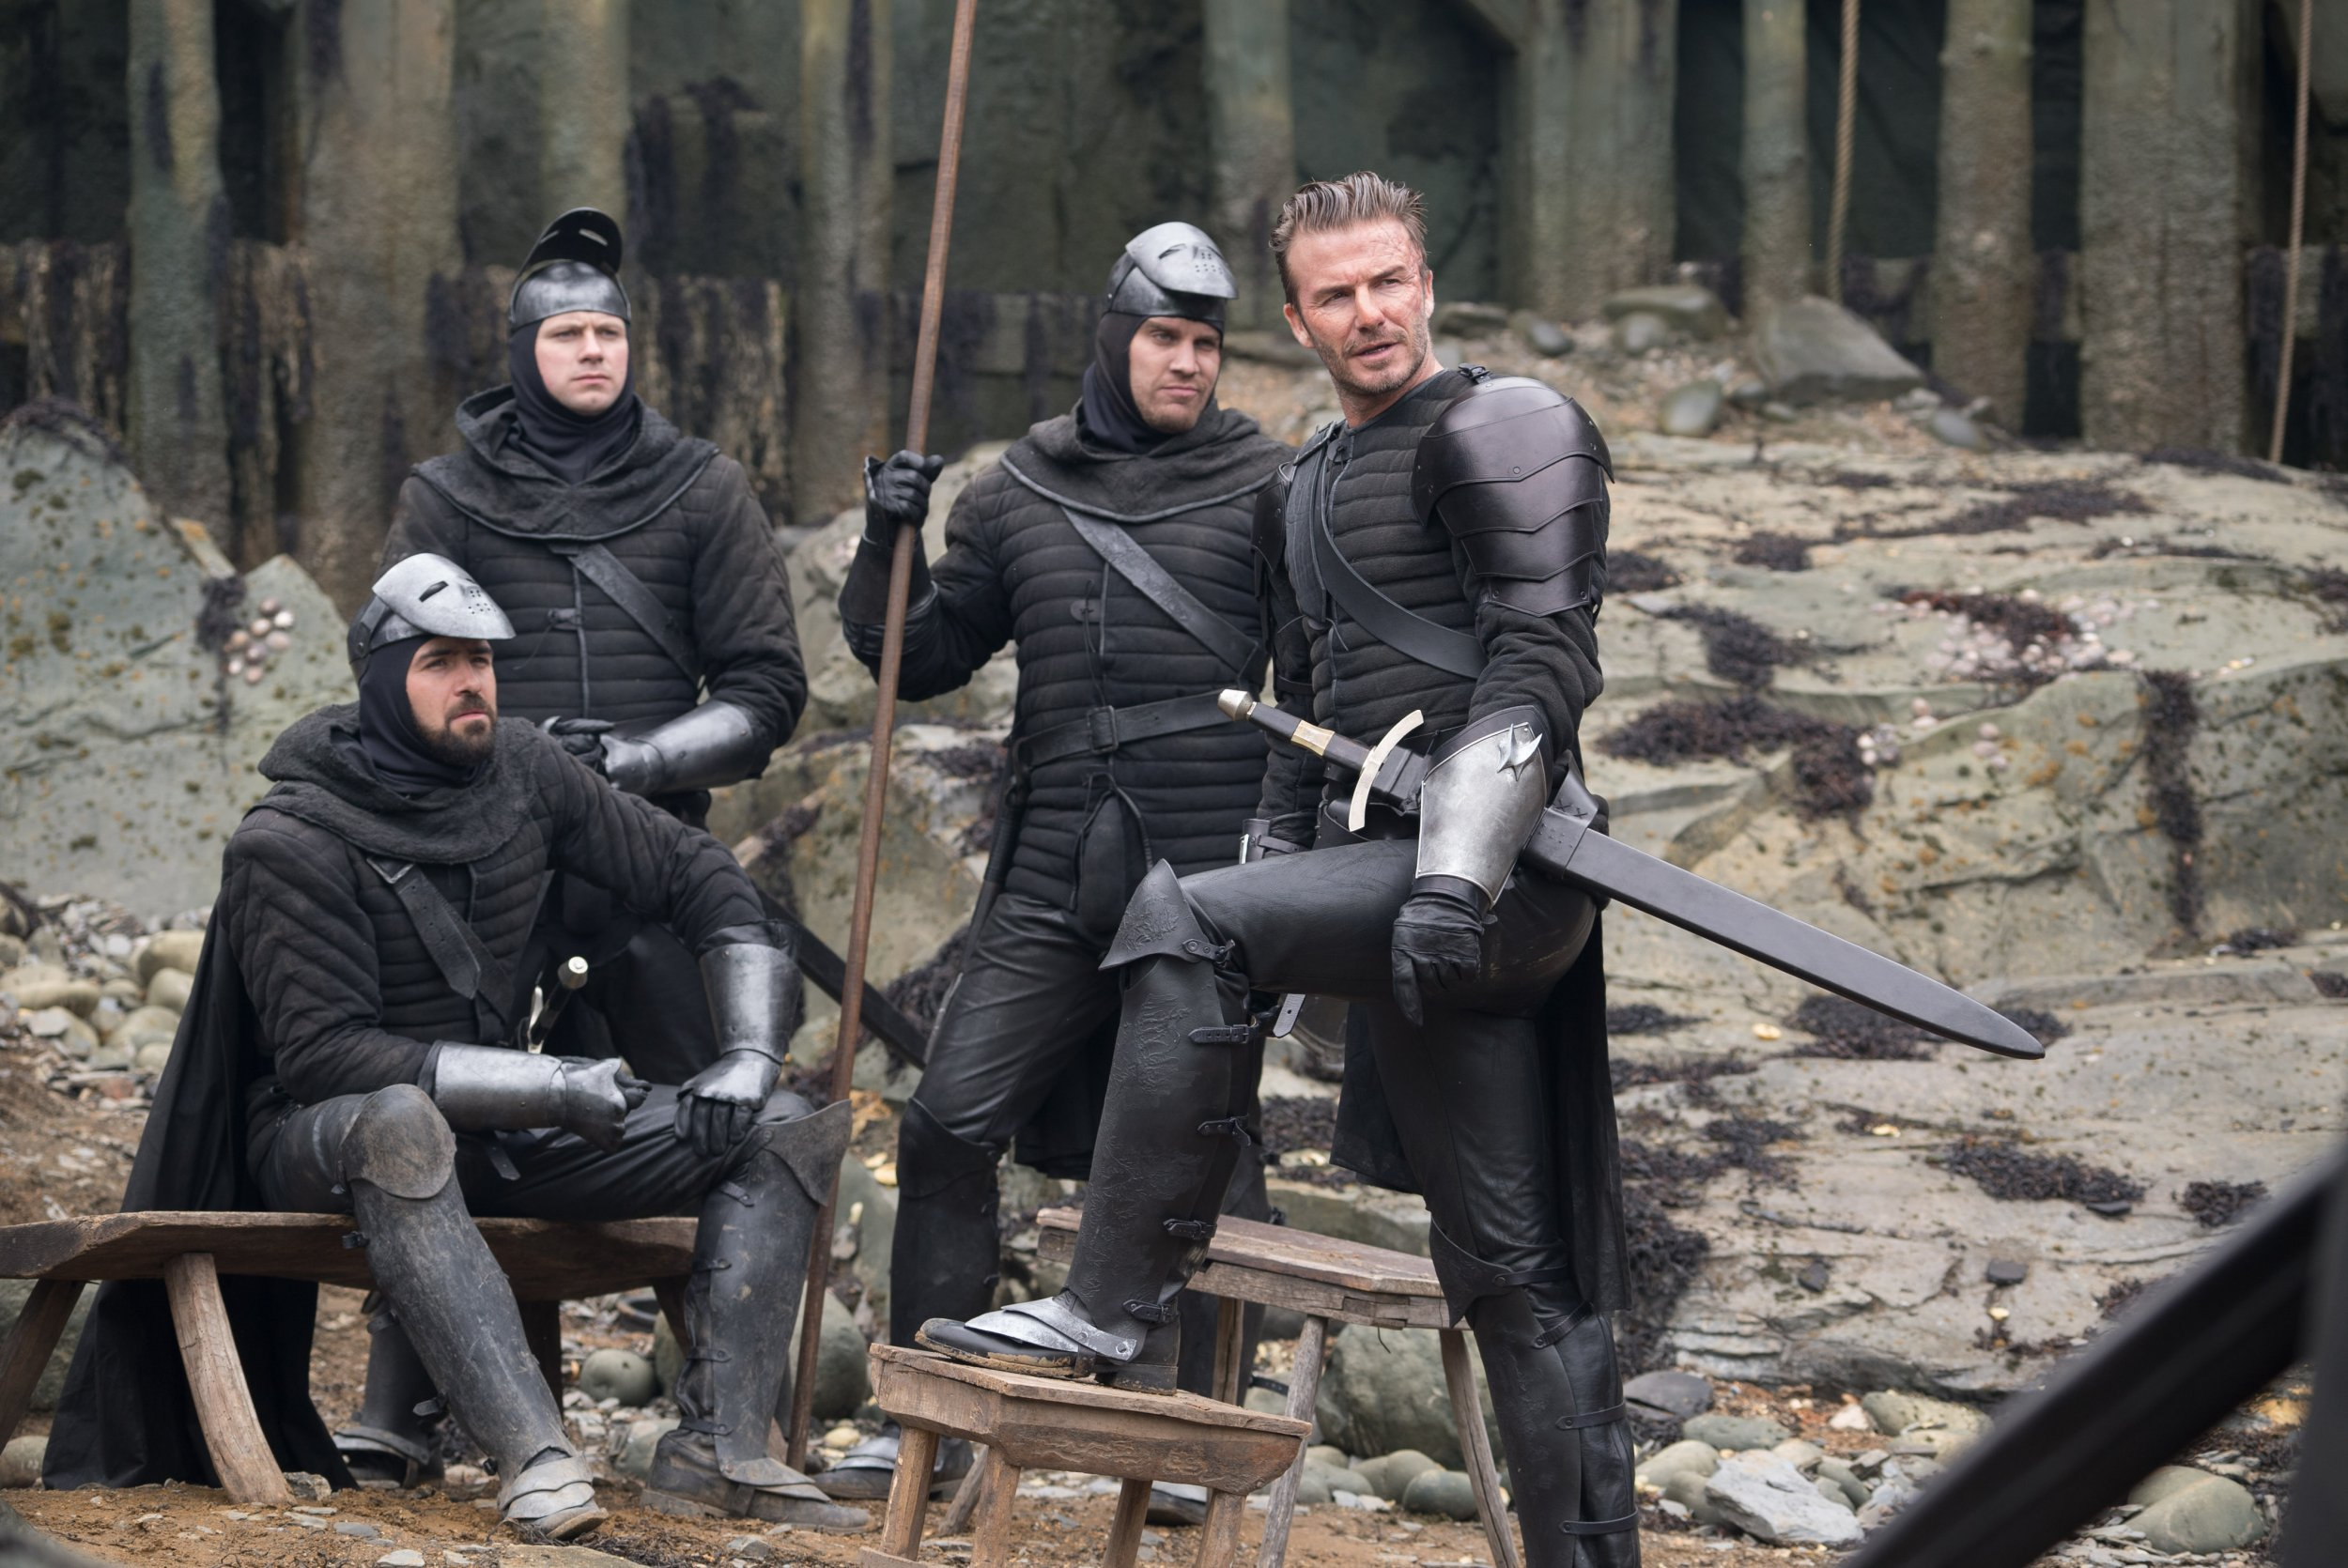 Take a look at David Beckham as he swaps the football kit for a suit of armour